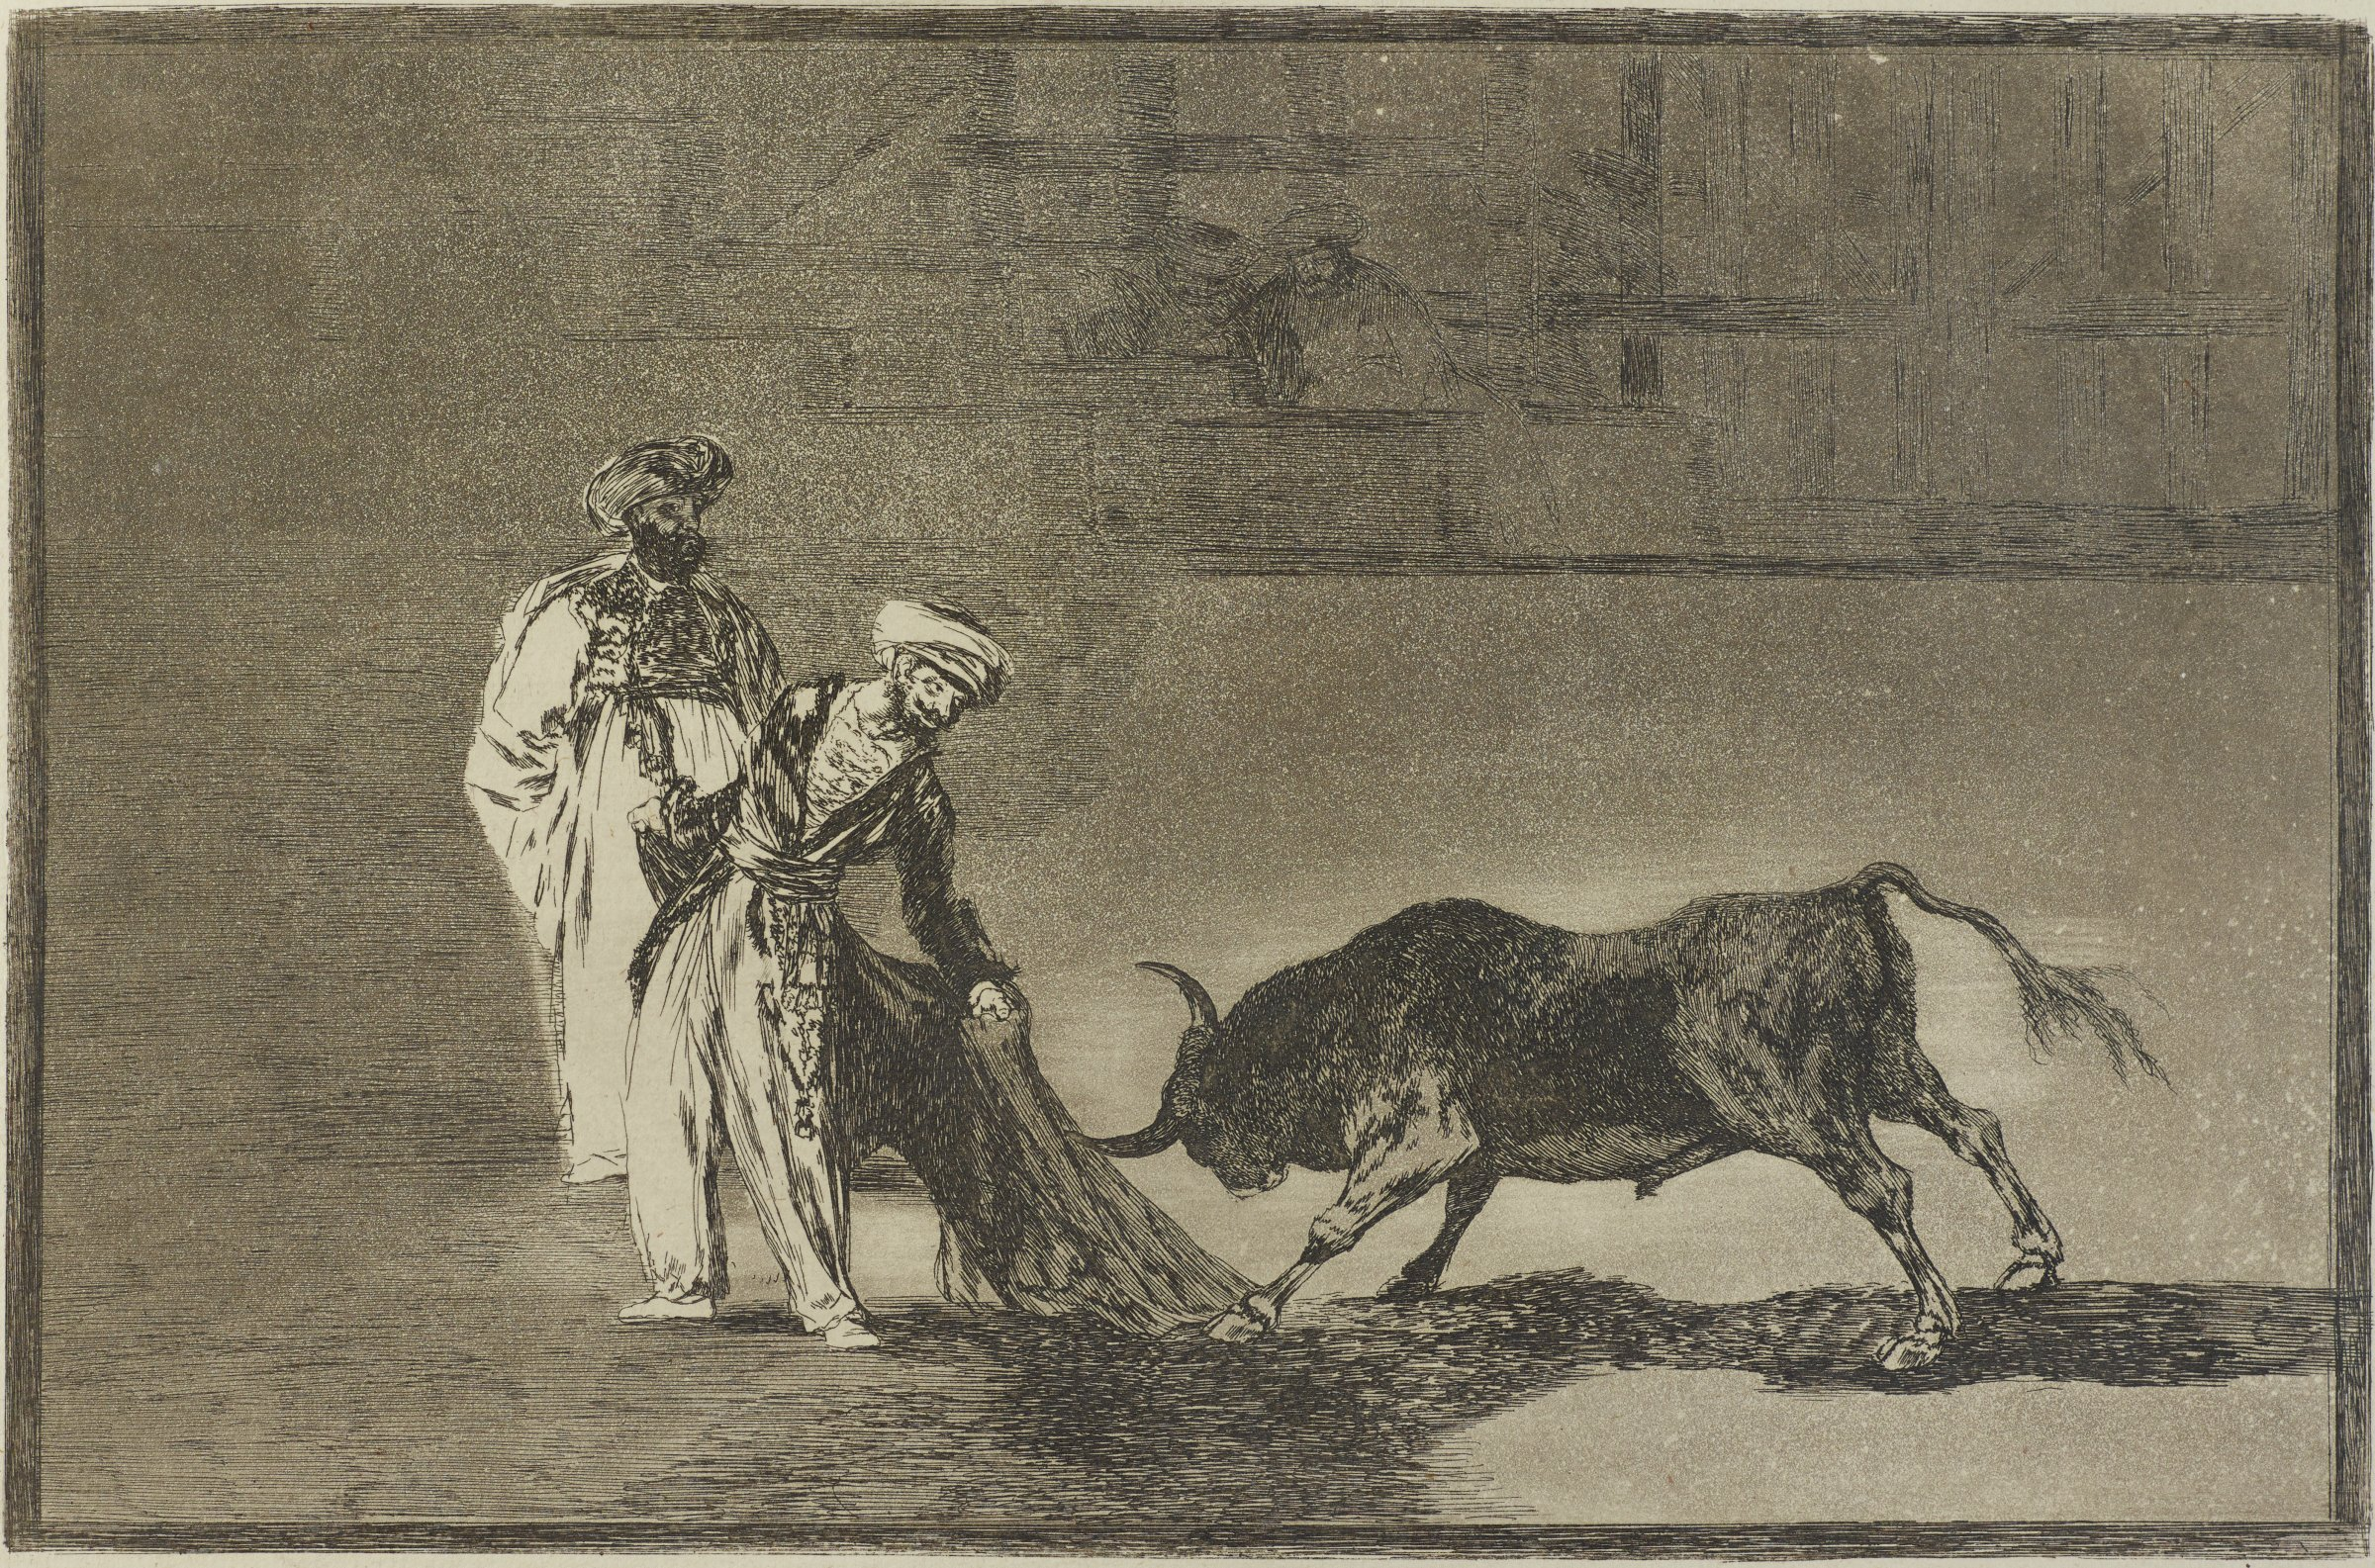 Plate 6 of the Tauromaquia. A man with a cape stands antagonizing a bull that is charging towards the cape. Another larger man stands behind the first. Half drawn In the background are seated men in a crowd.